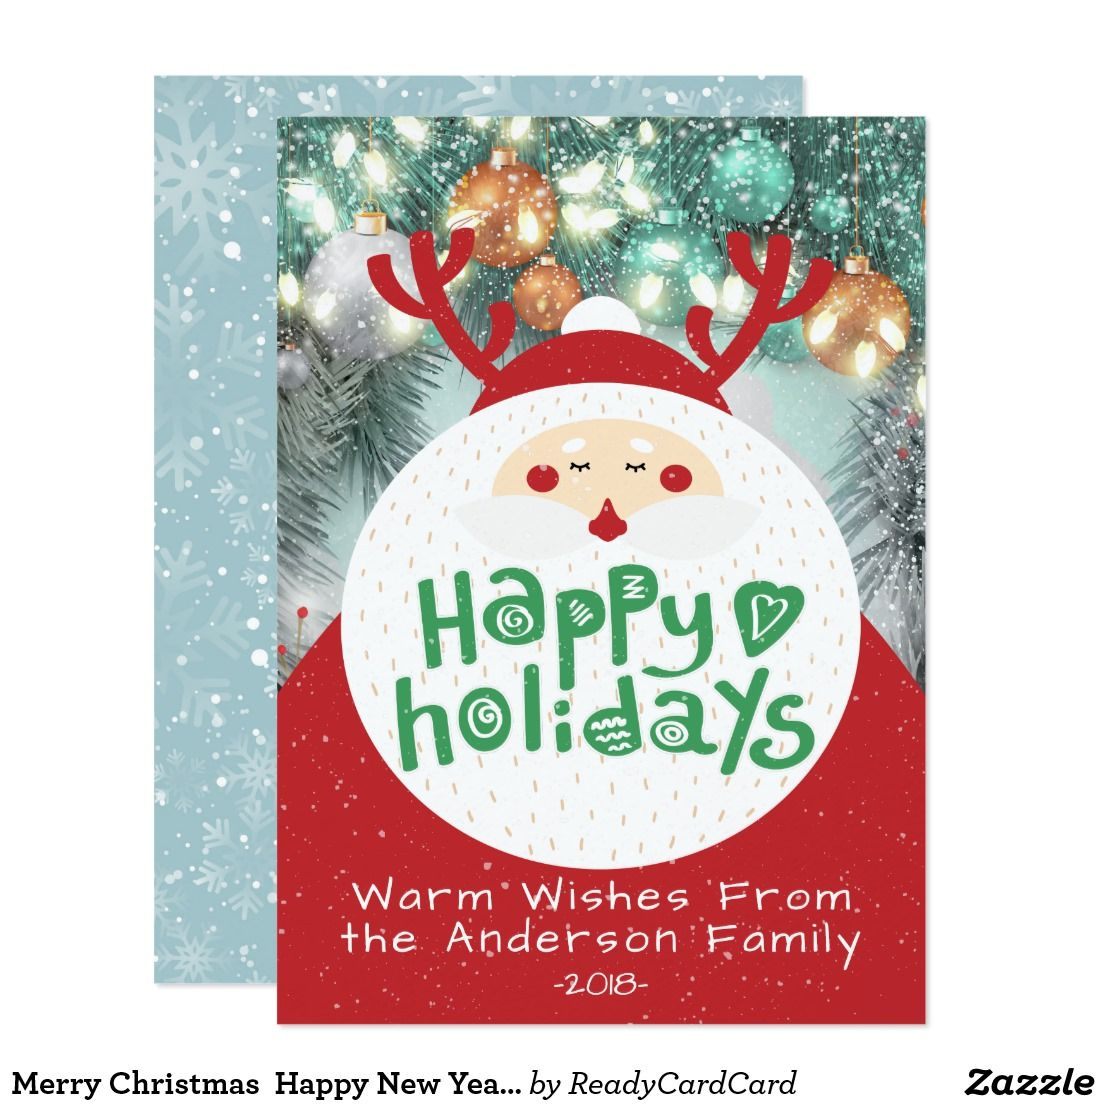 Merry Christmas Happy New Year Holiday Greetings Card Holiday